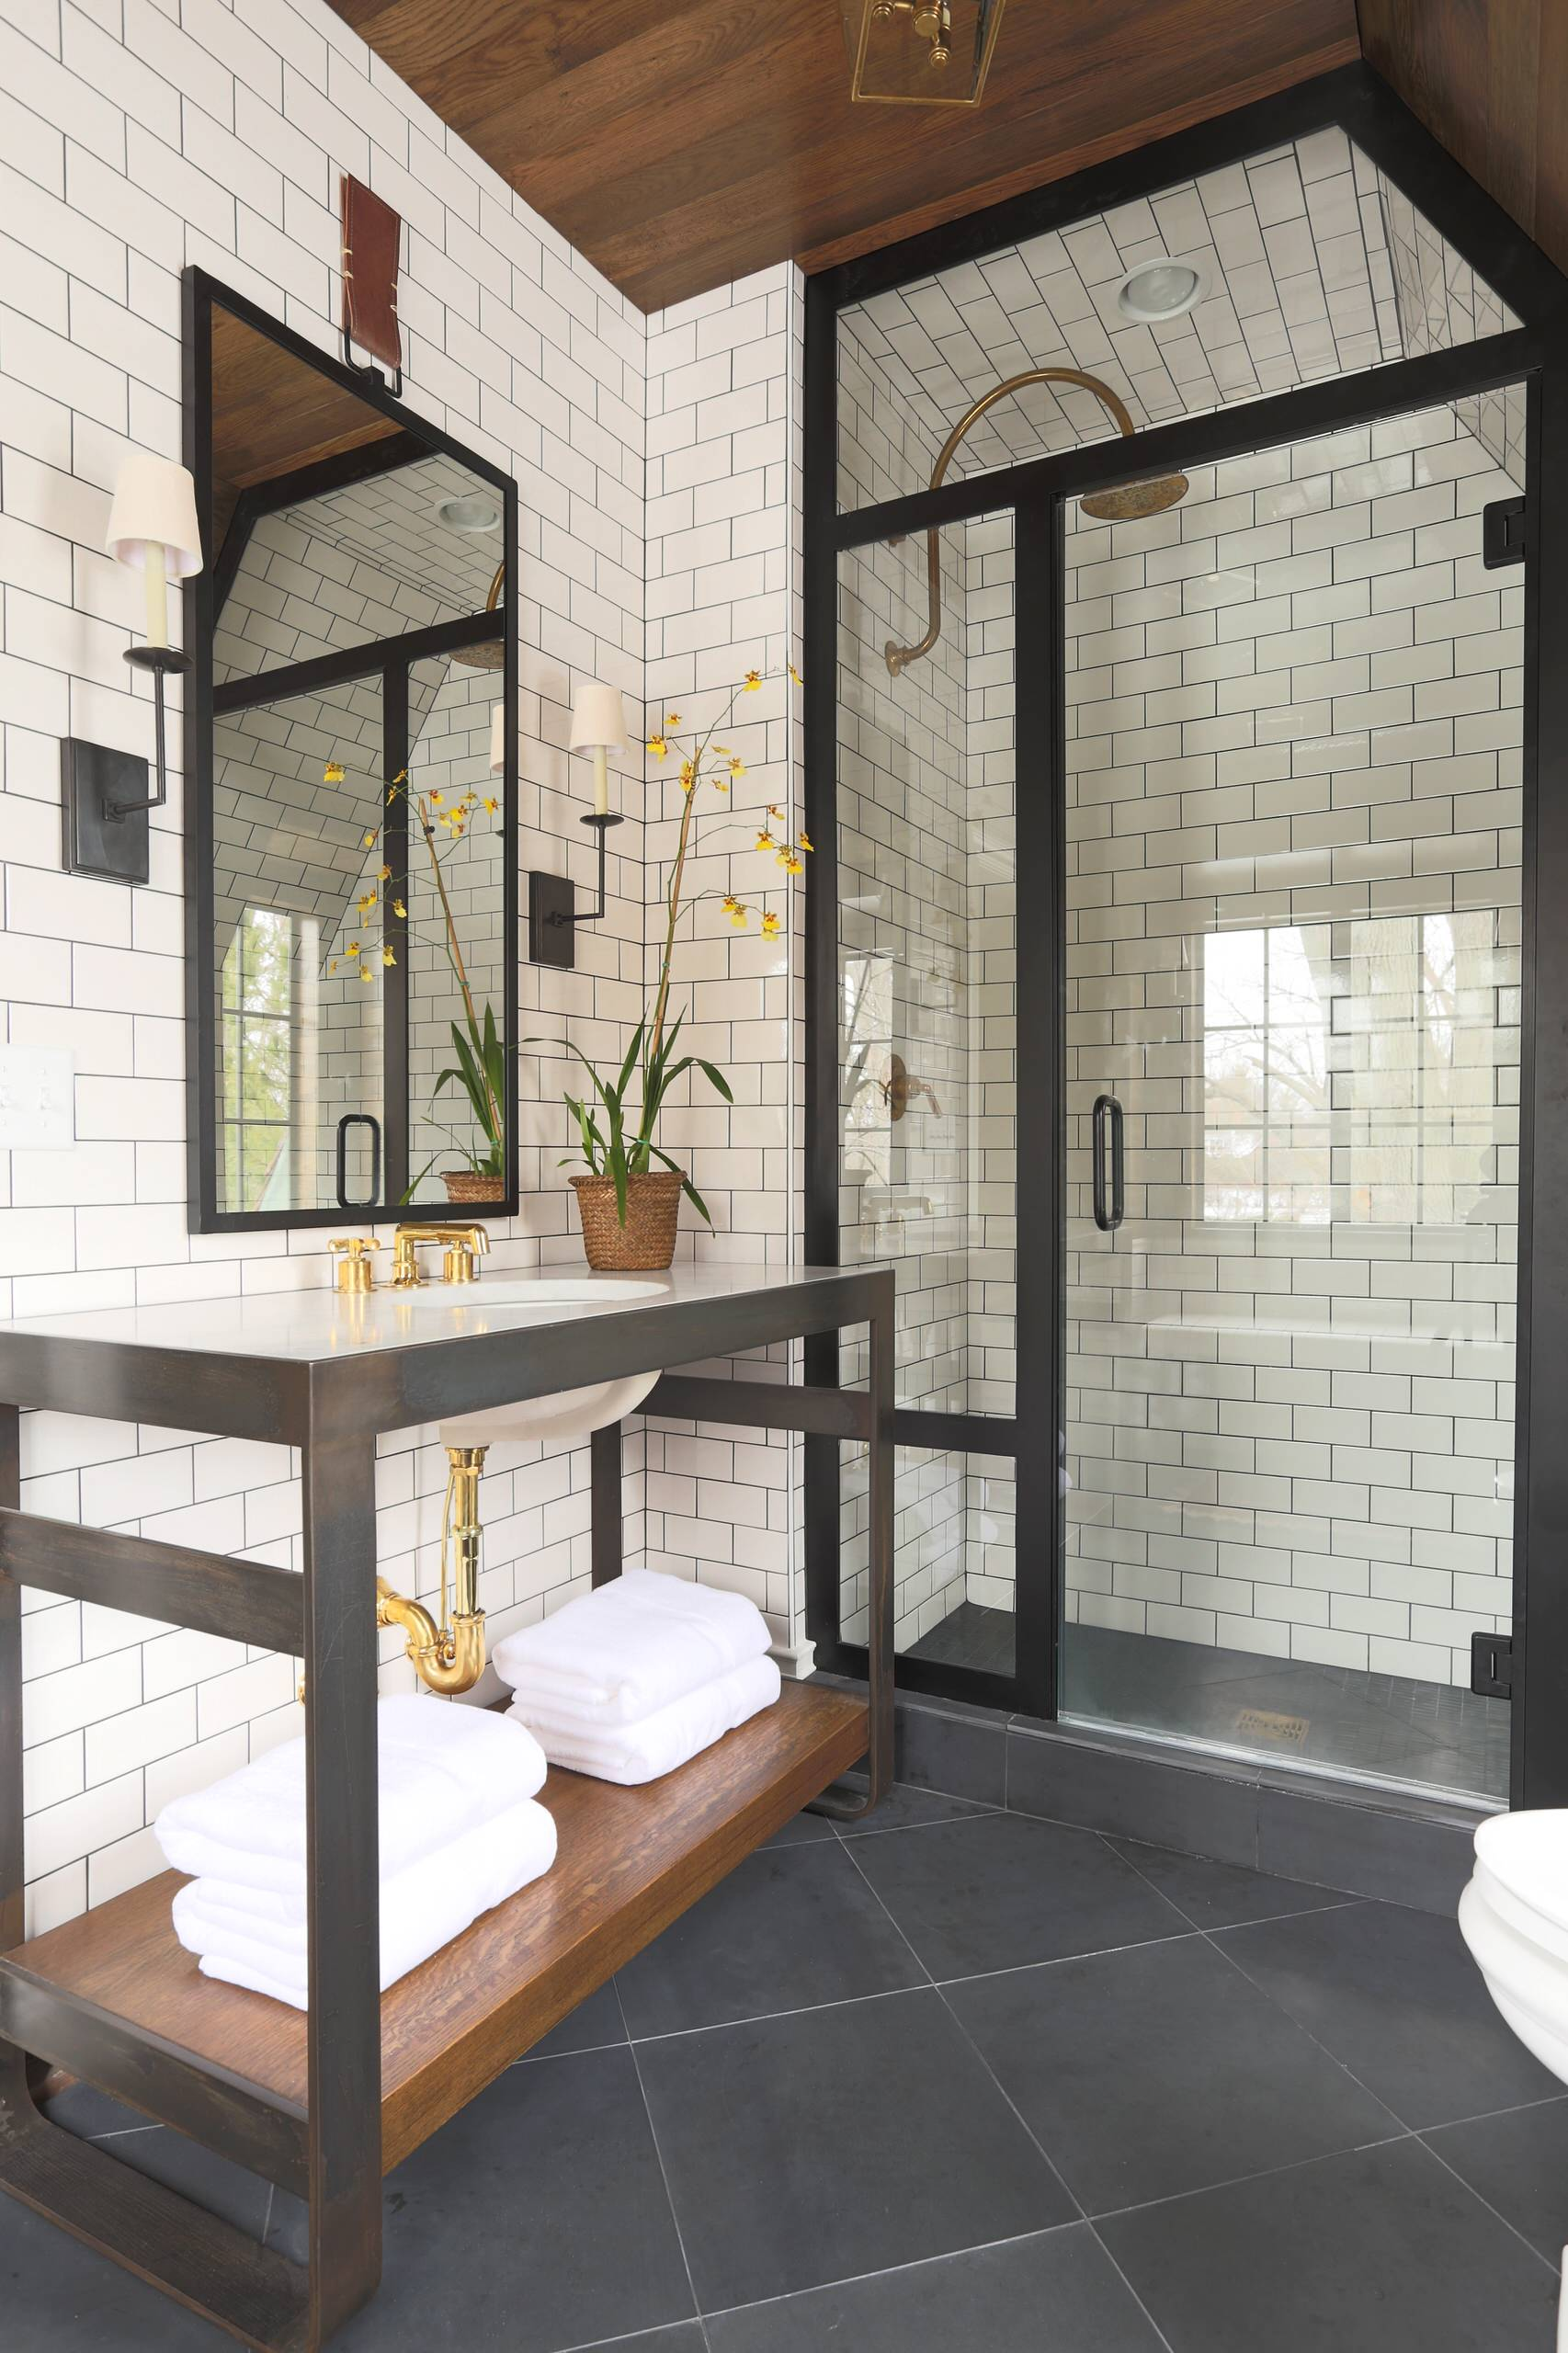 White tiles grey grout Transitional Bathroom classic design glass shower hex mosaic subway wall tile